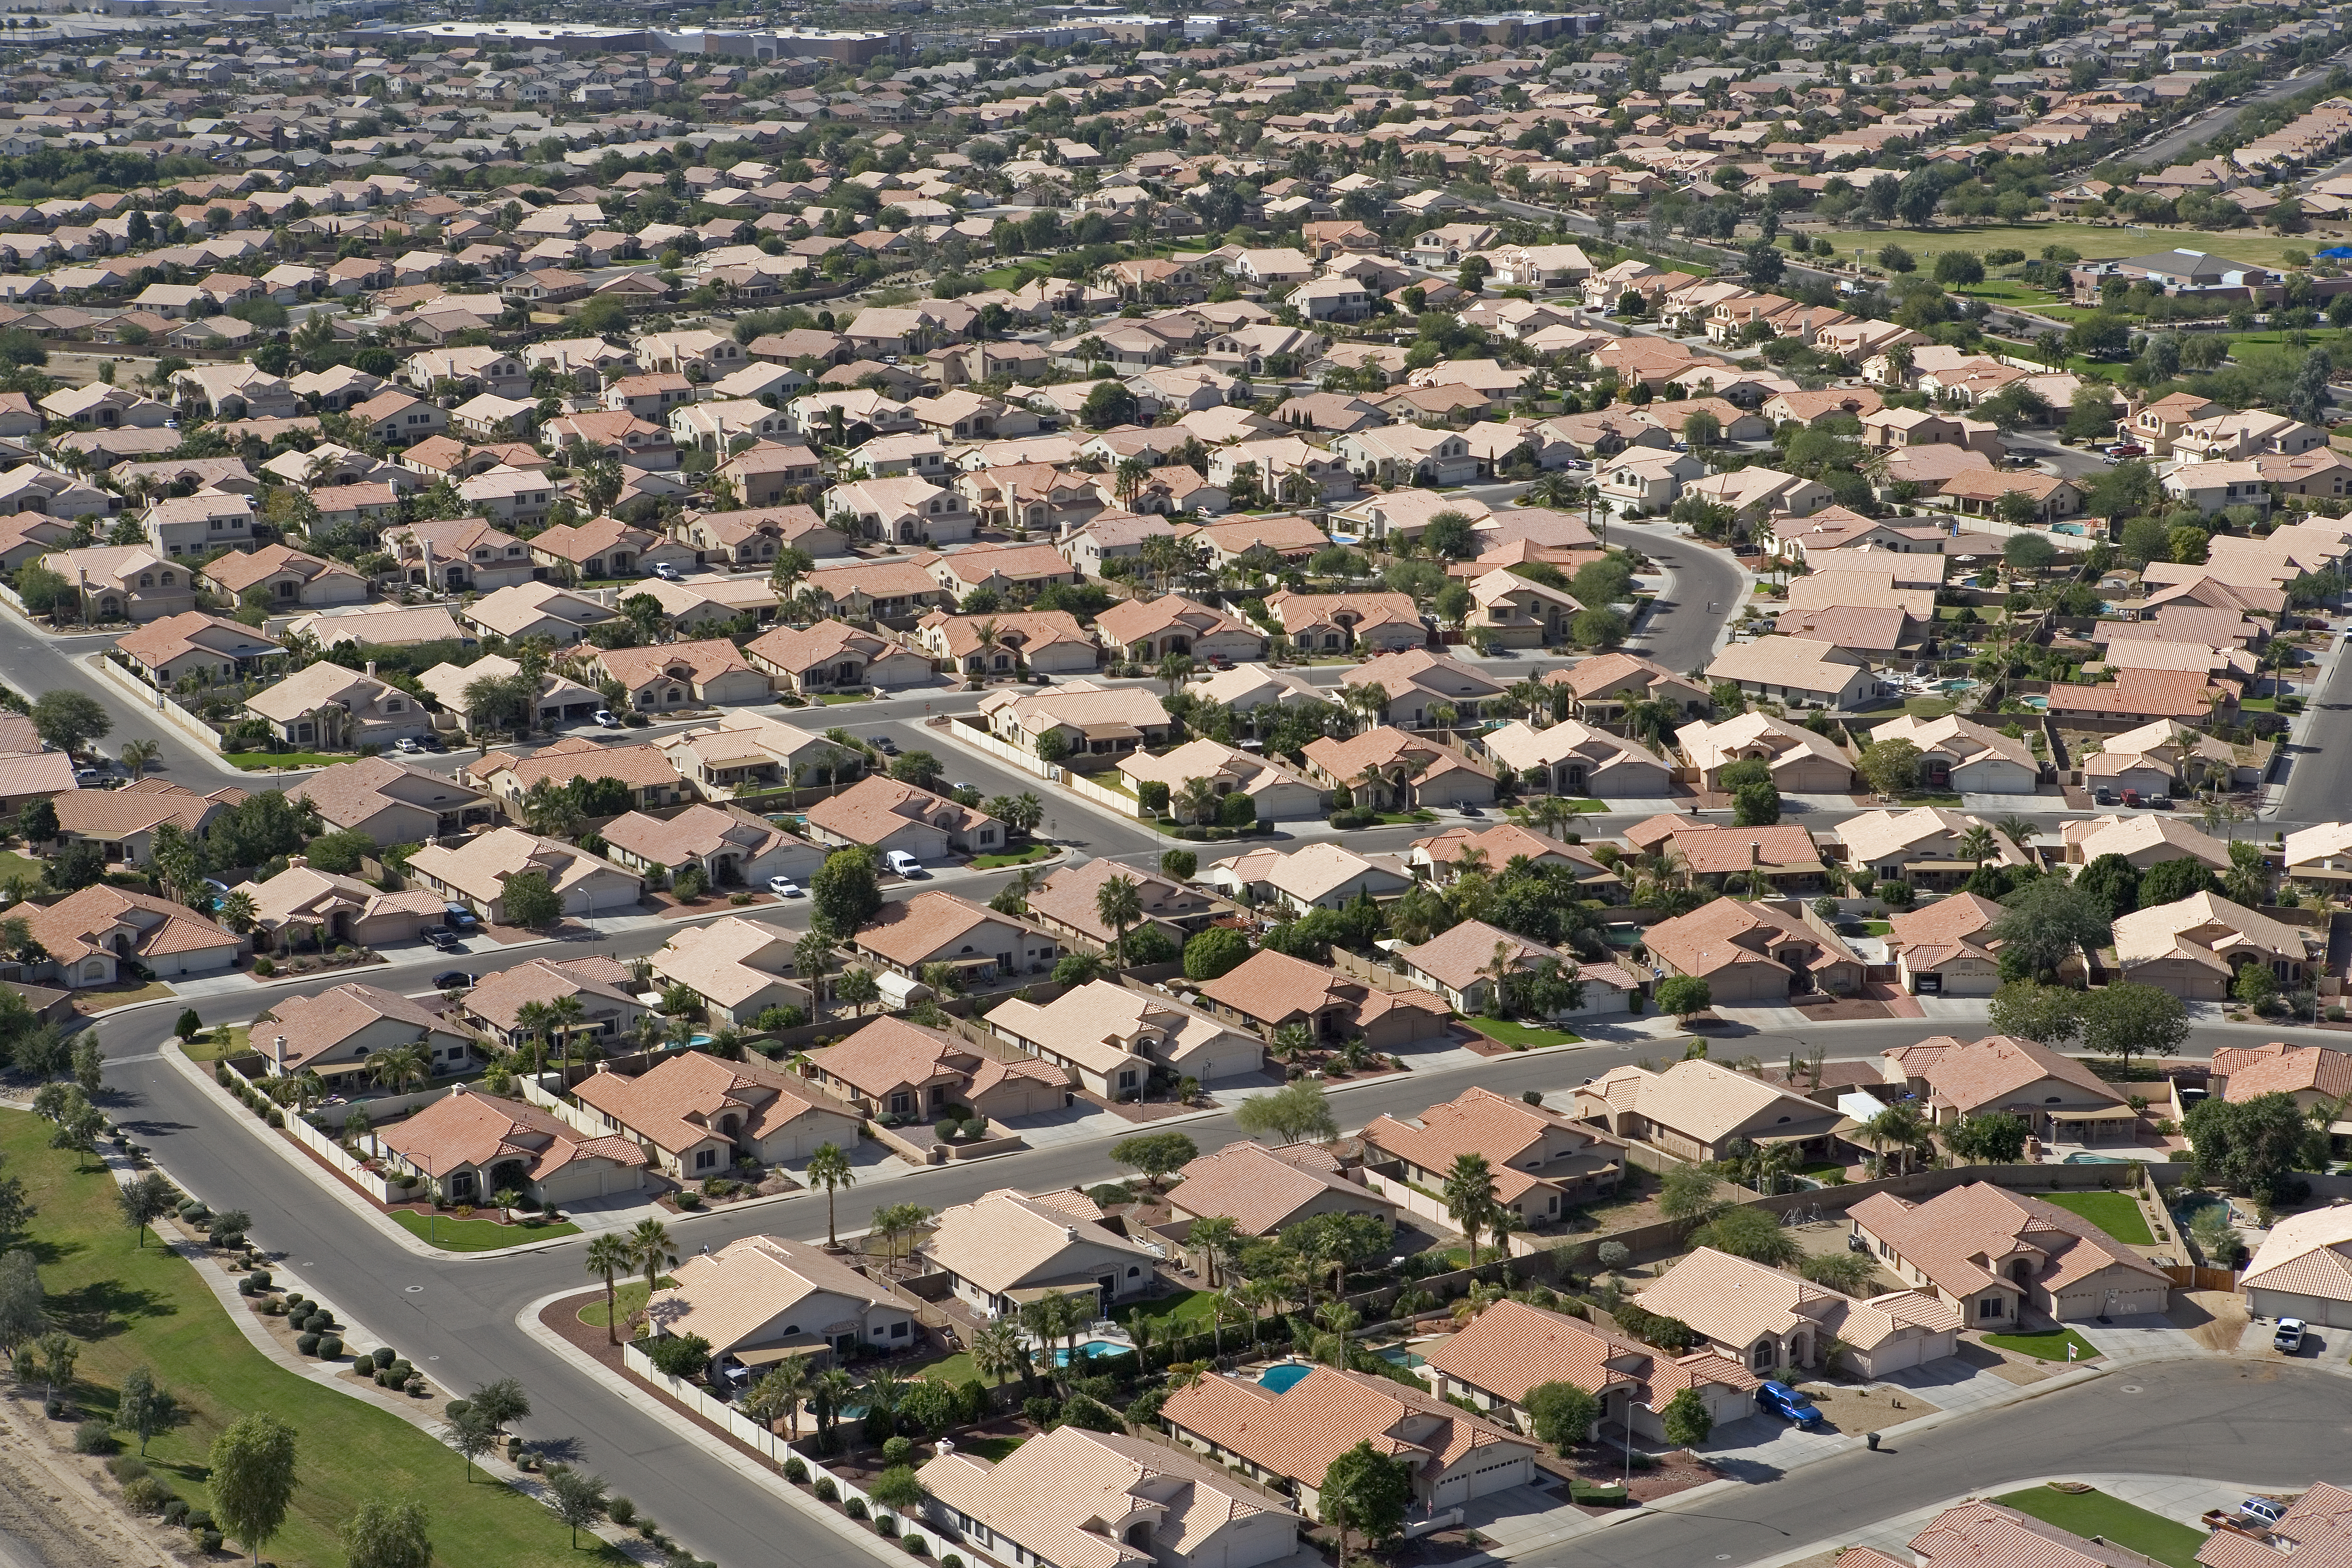 To combat climate change, cities need to tackle sprawl